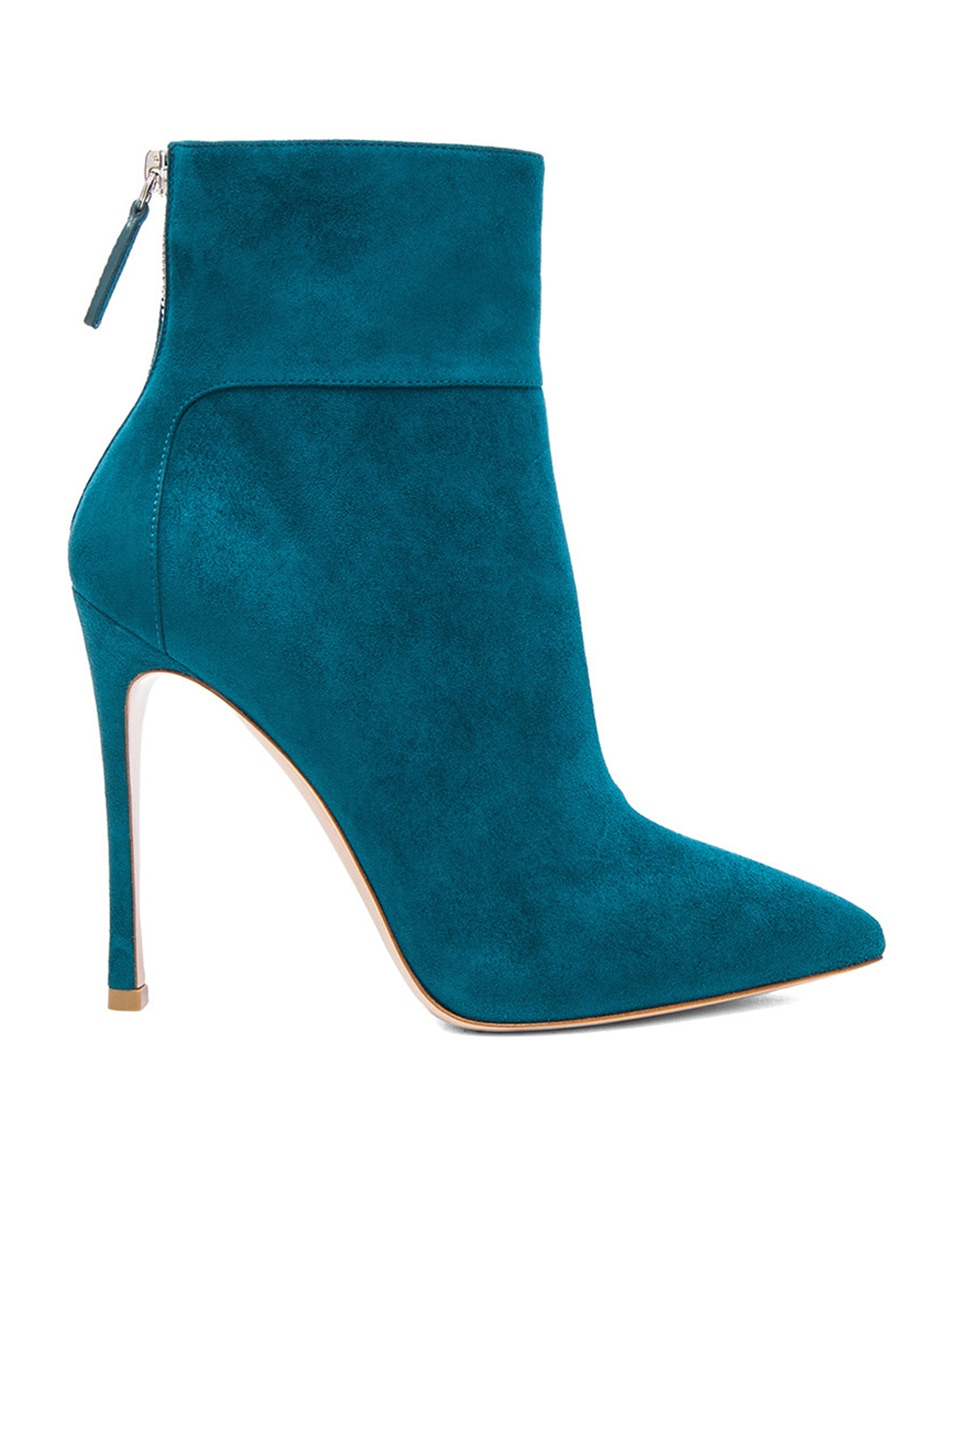 Image 1 of Gianvito Rossi Suede Ankle Booties in Pavone